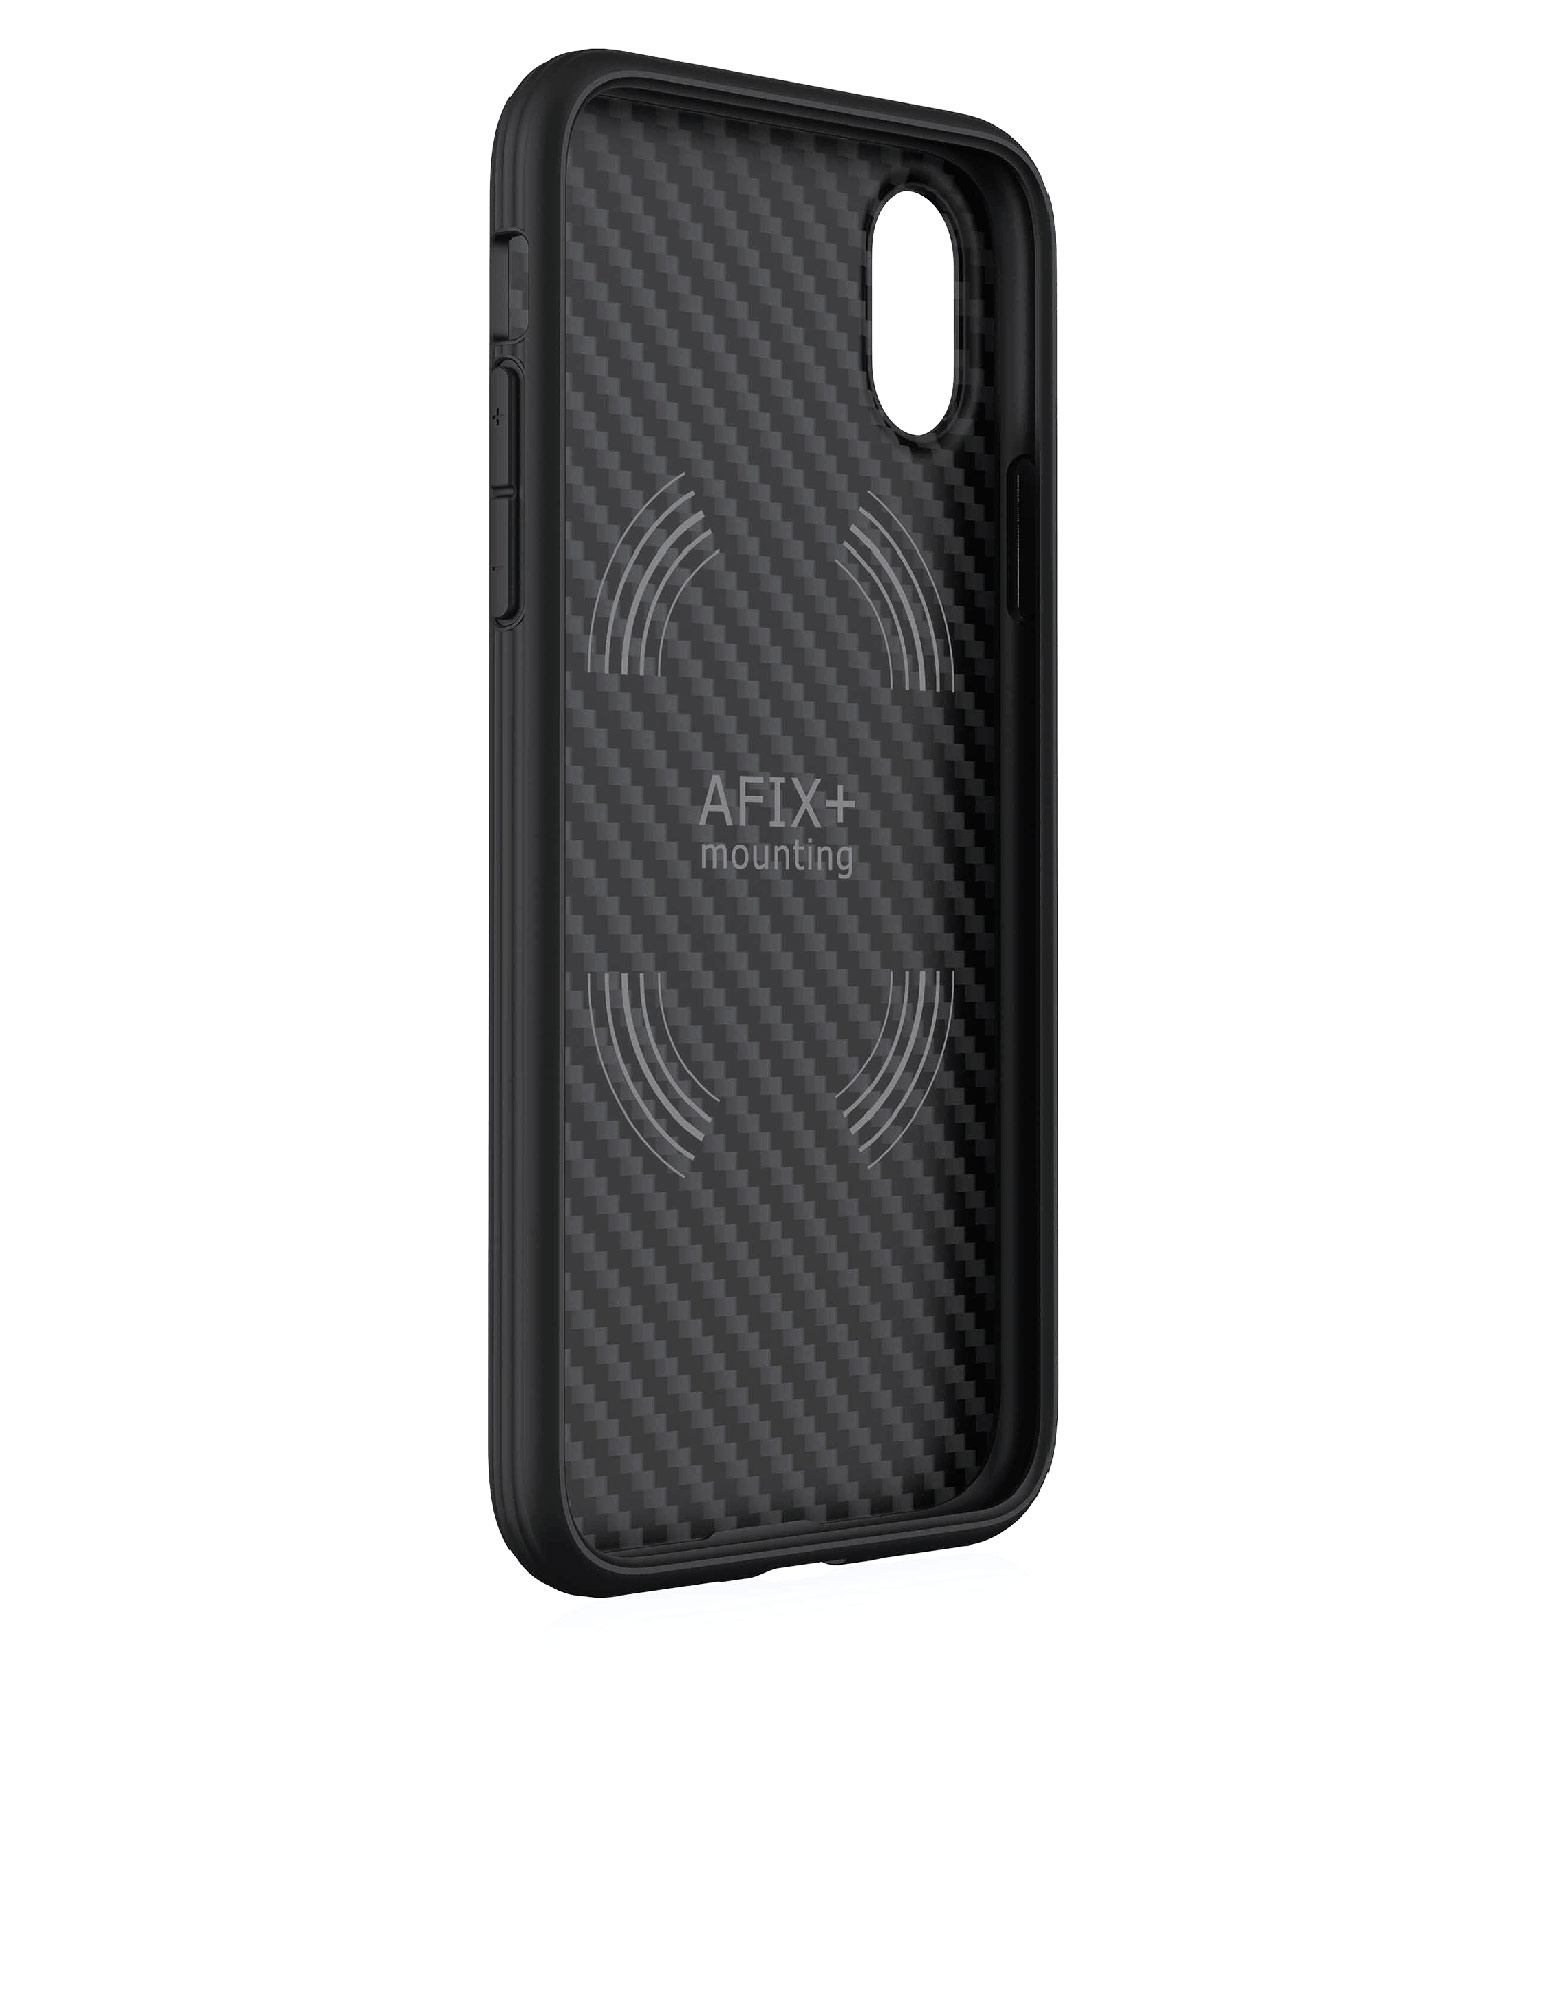 Evutec AER Karbon With Afix Case Black For iPhone X